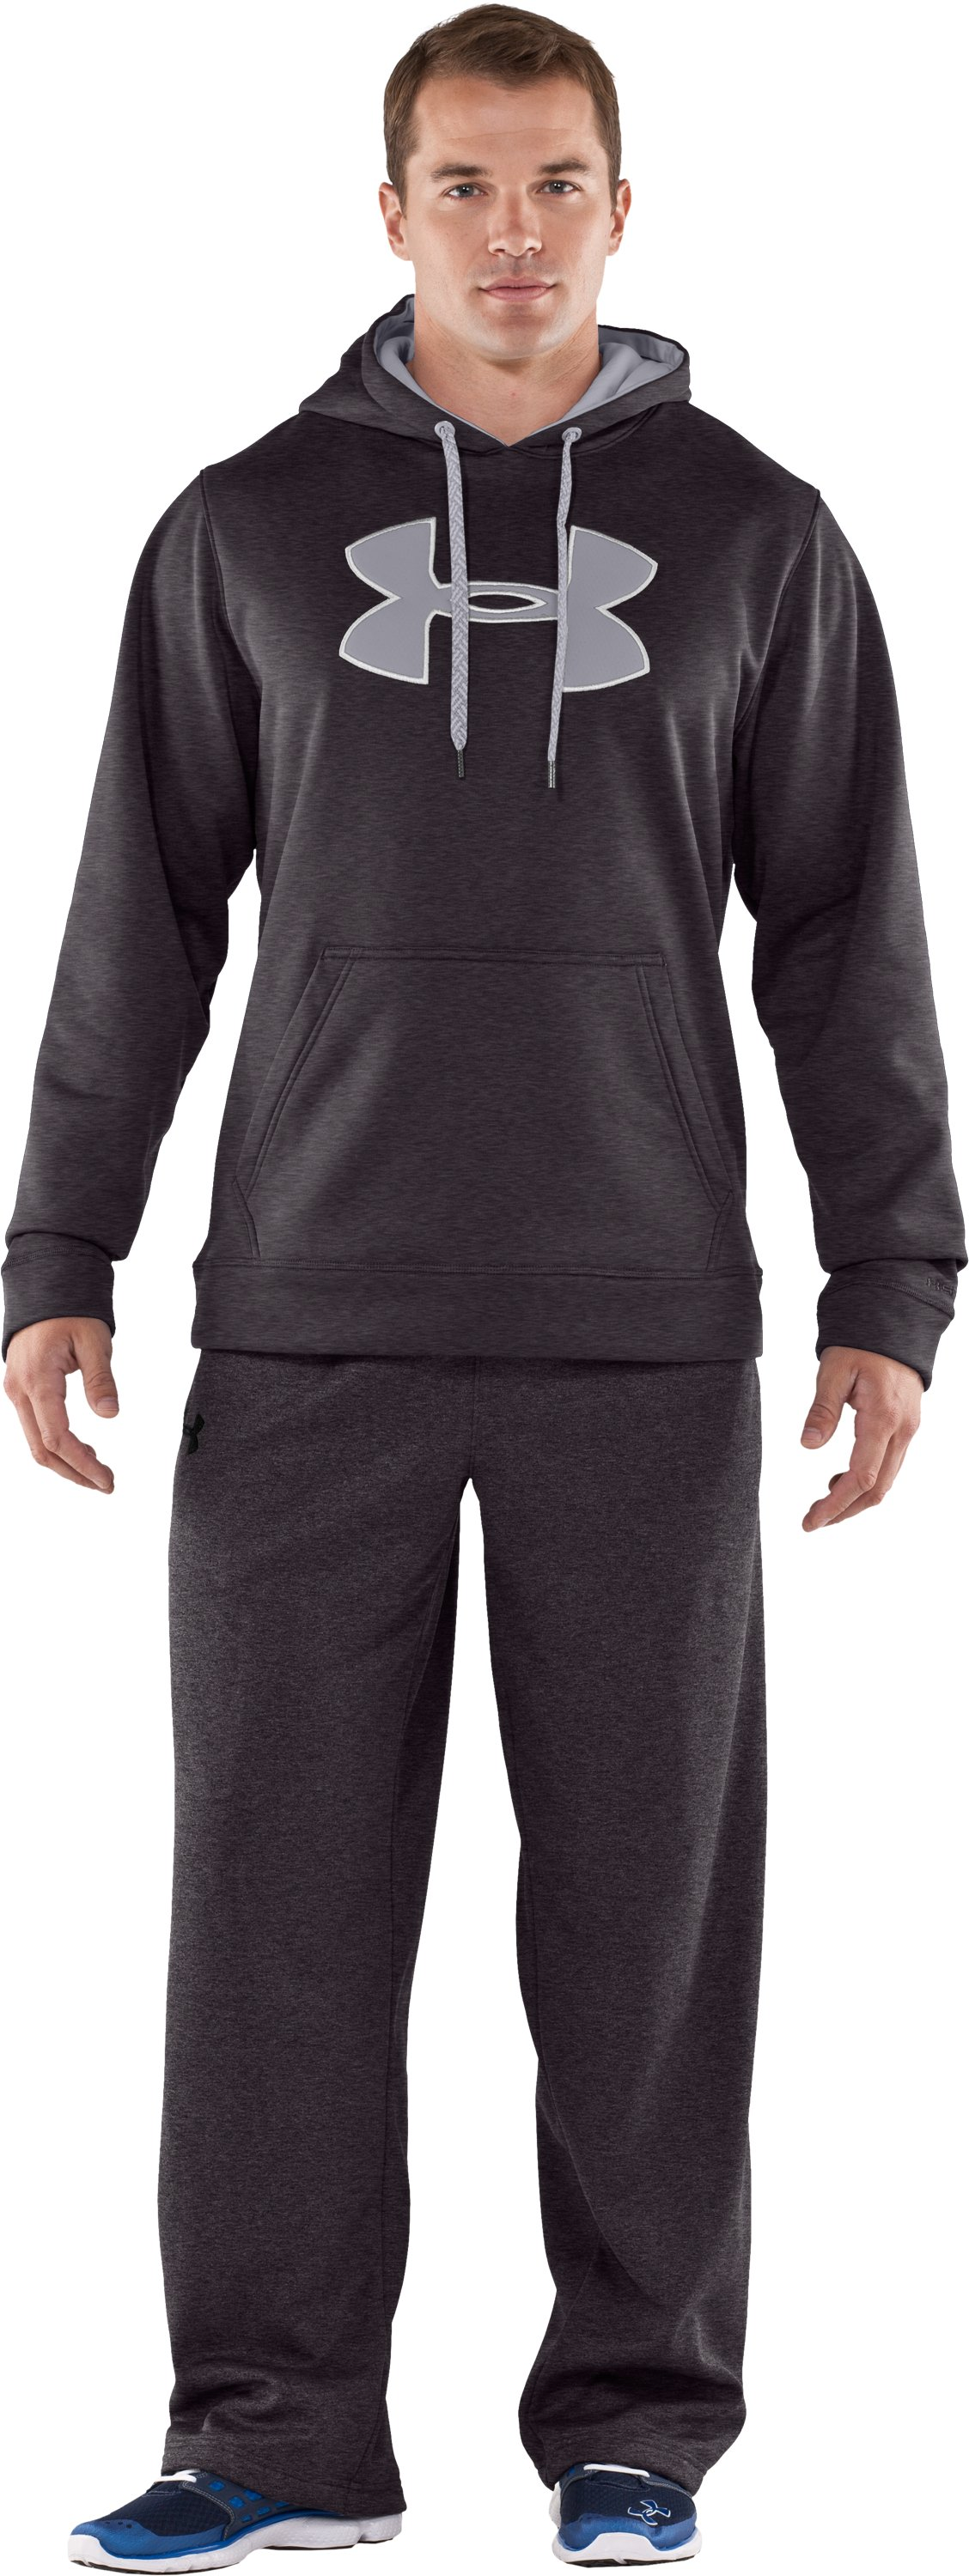 Men's Armour® Fleece Storm Big Logo Hoodie, Carbon Heather, zoomed image